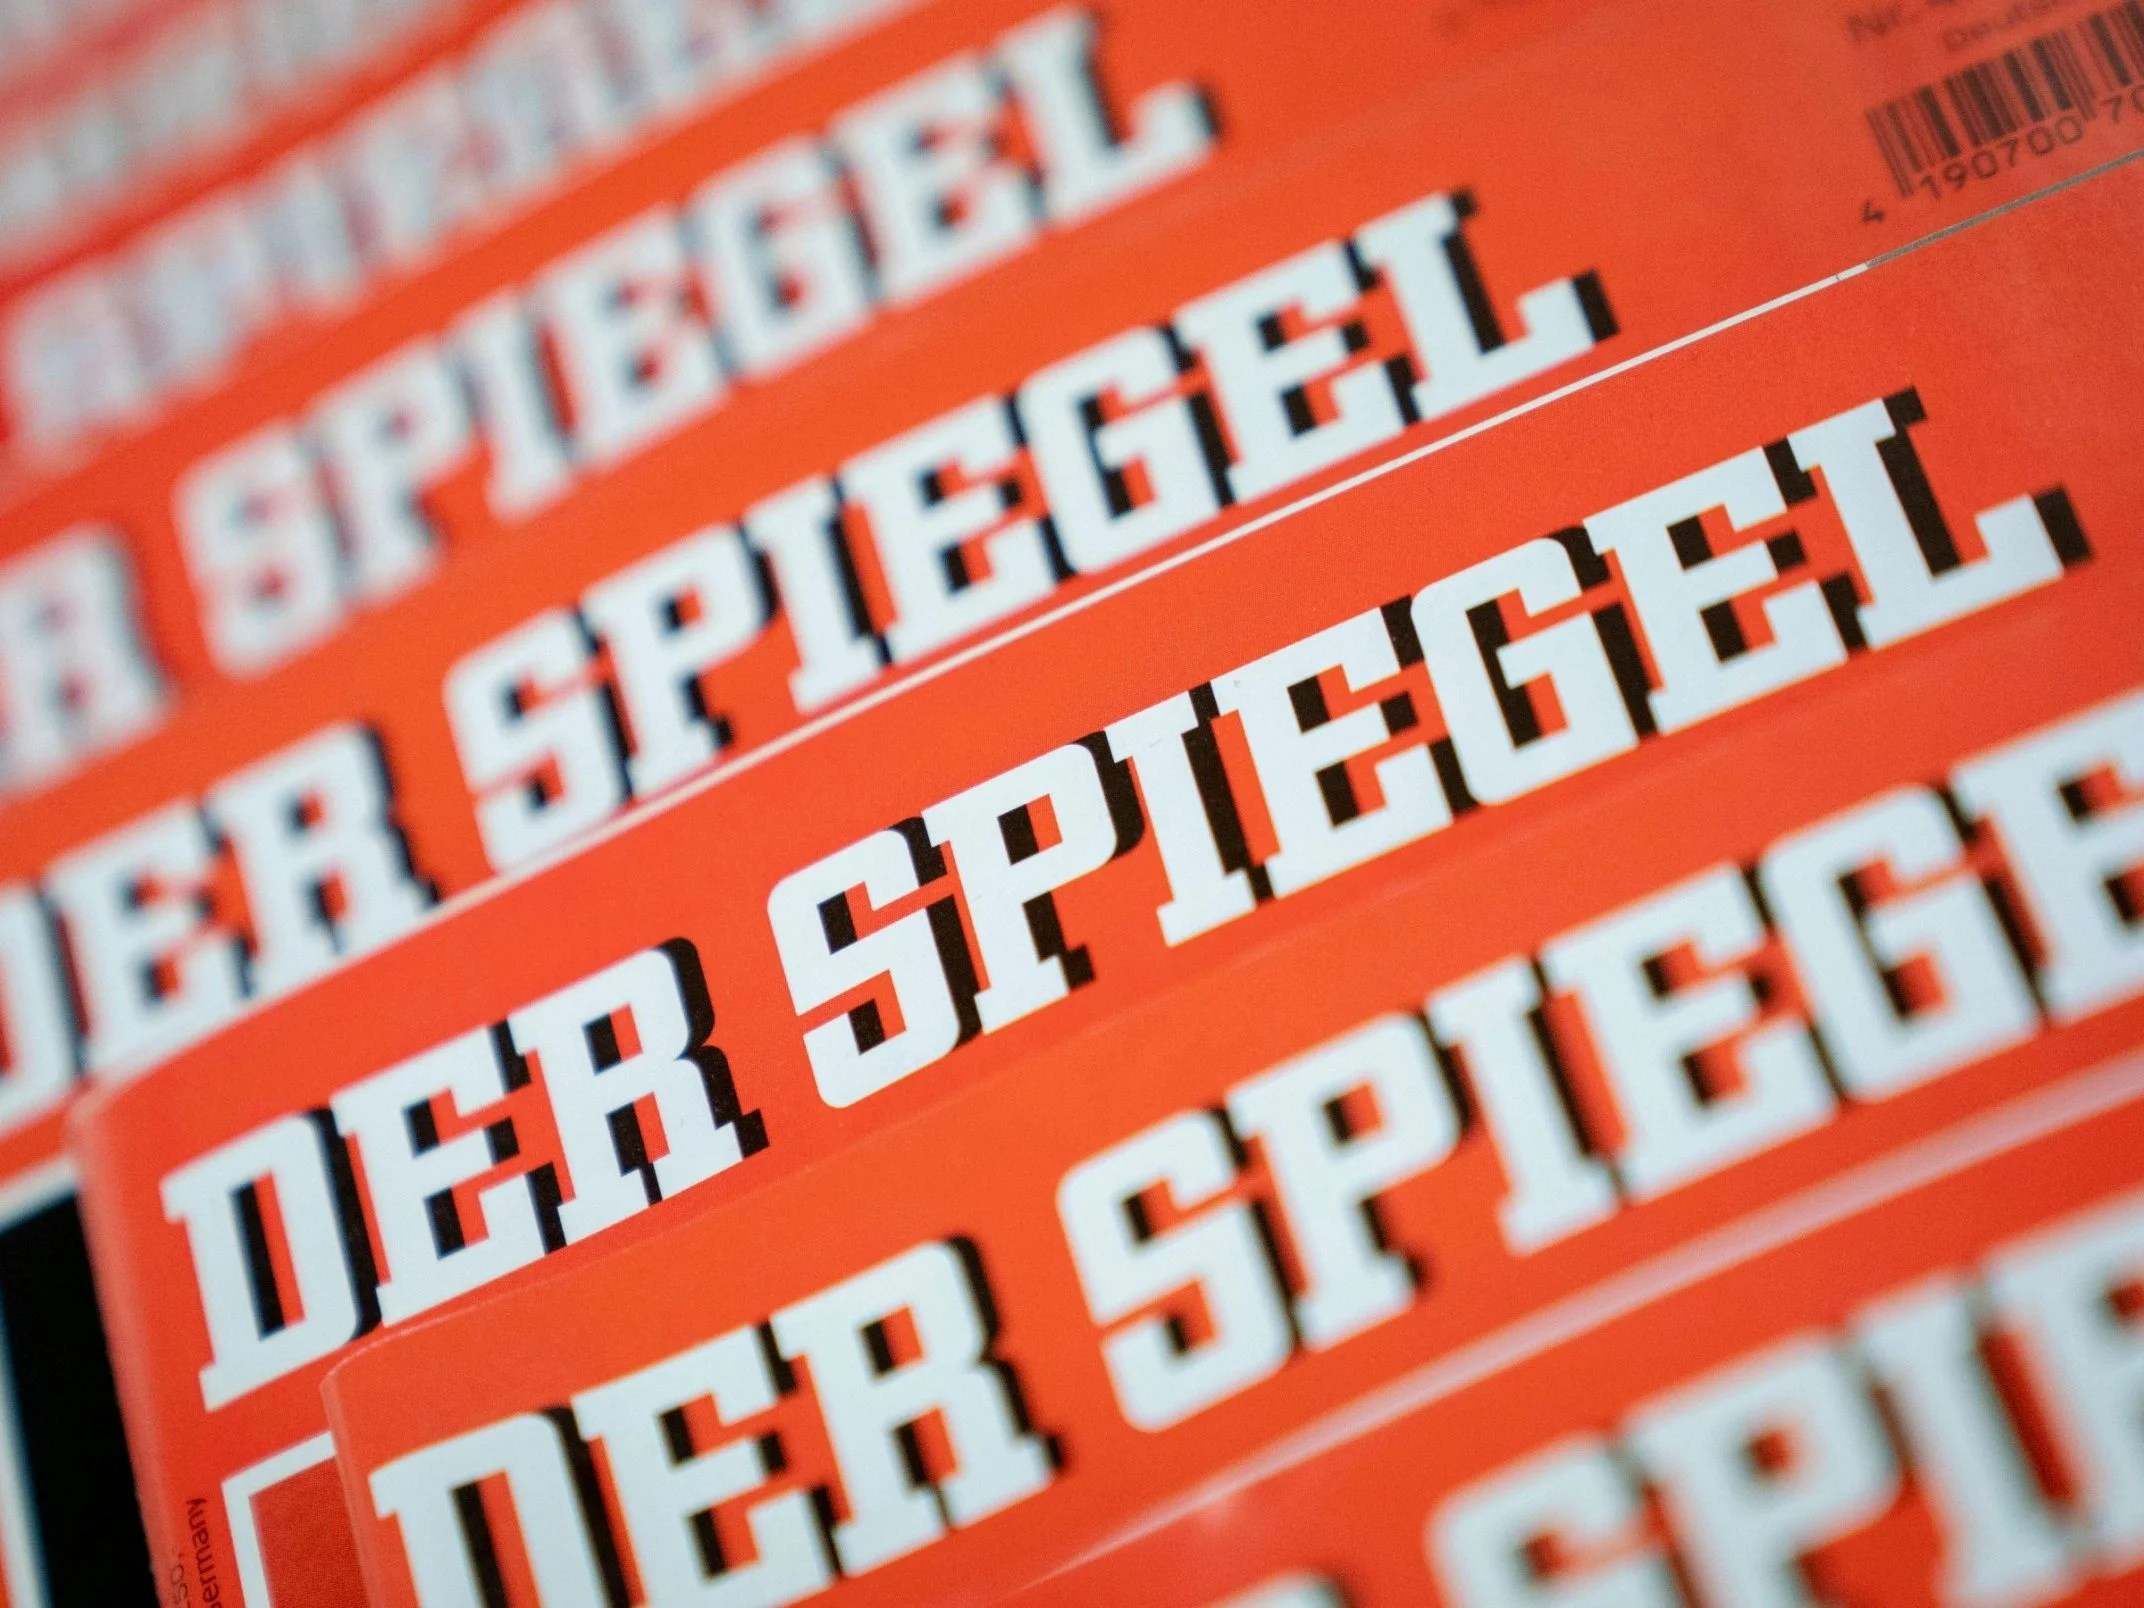 Badspiegel Jolled Award Winning Journalist At Der Spiegel Admits Making Up